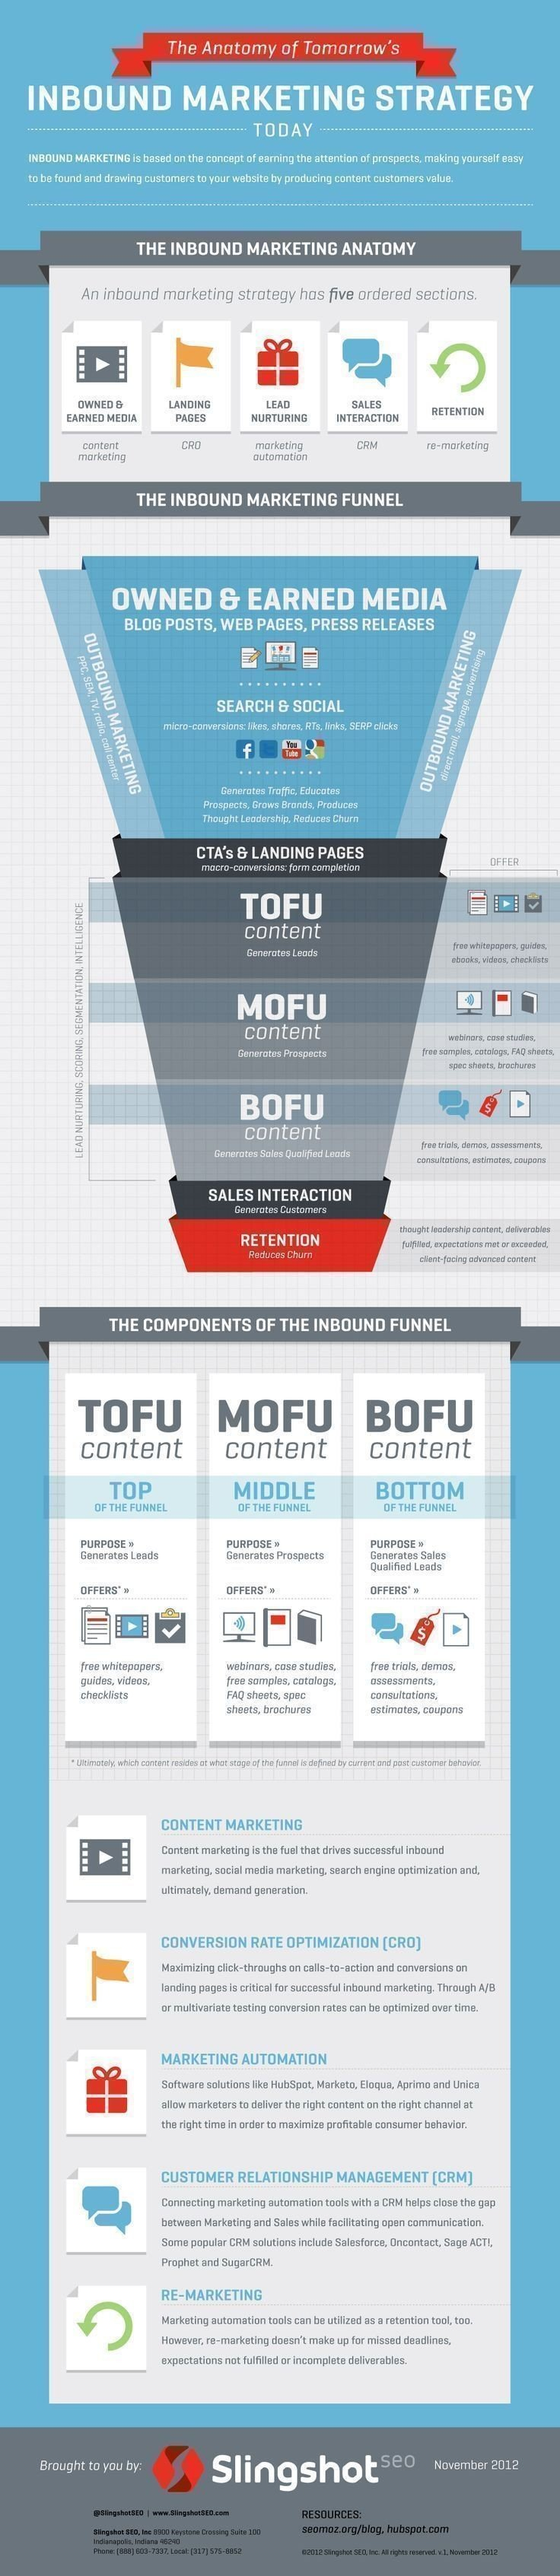 The anatomy of tomorrows inbound #Marketing #Strategy #SMM #Infographic